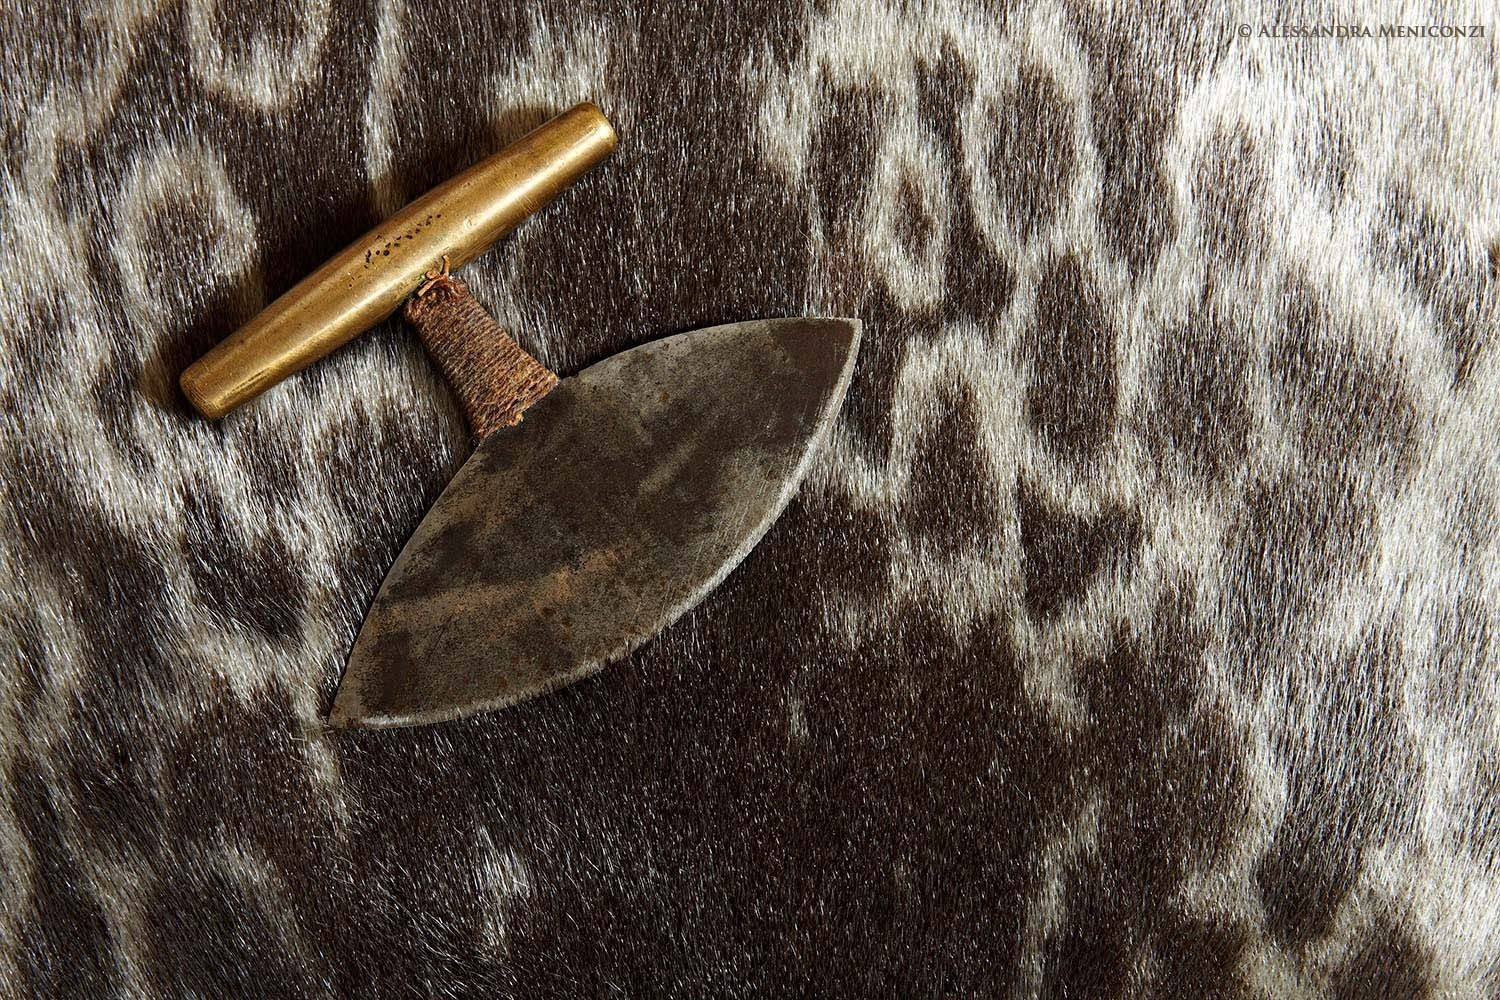 An Inuit ulu knife, resting on the pelt of a ringed seal, in Qaqortoq, South Greenland. For thousands of years the ulu has been used by Arctic people as a knife and scraper for cutting up animals and preparing their skins, and as a general-purpose tool.